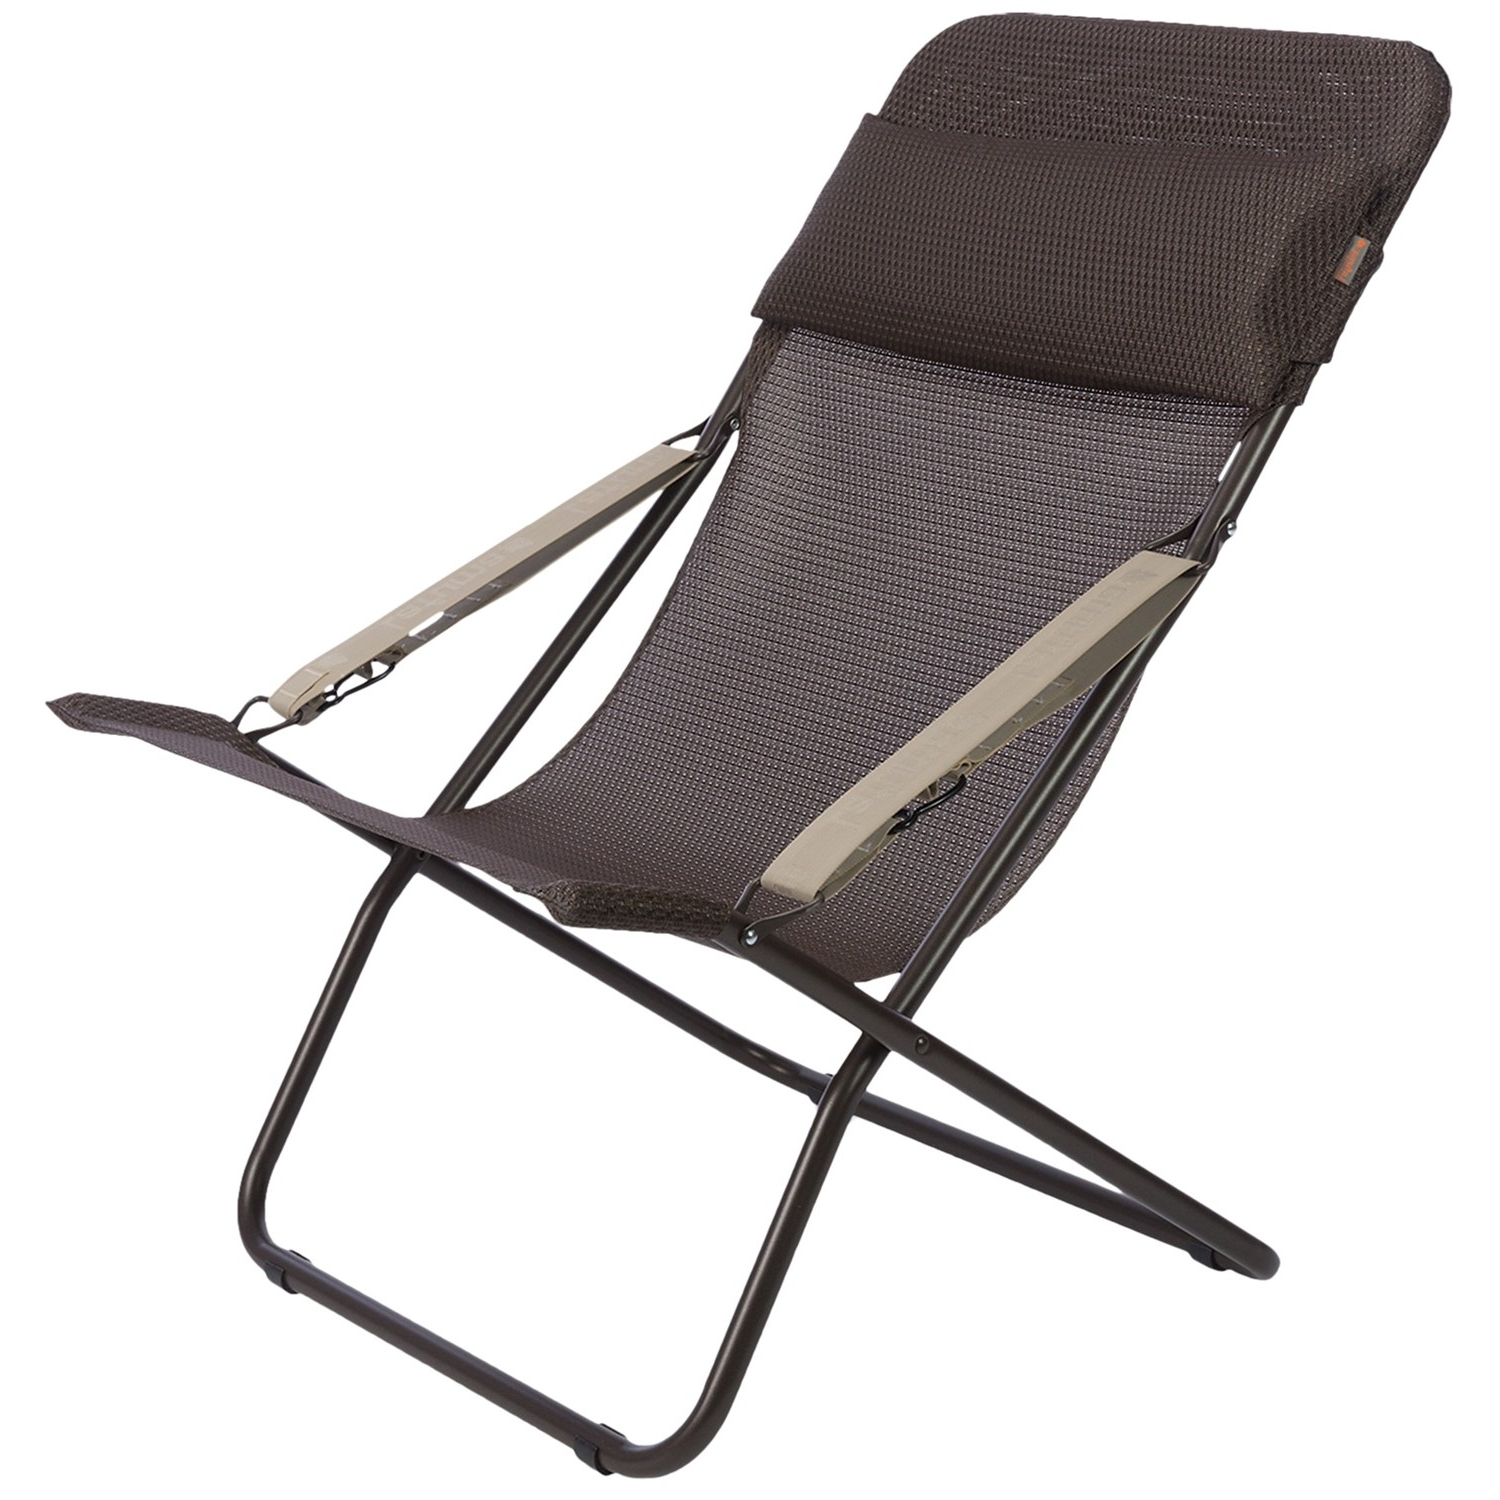 Chaise Lounge Chairs At Target For Preferred Outdoor : Outdoor Lounge Chairs Target Lounge Chairs Folding (View 5 of 15)